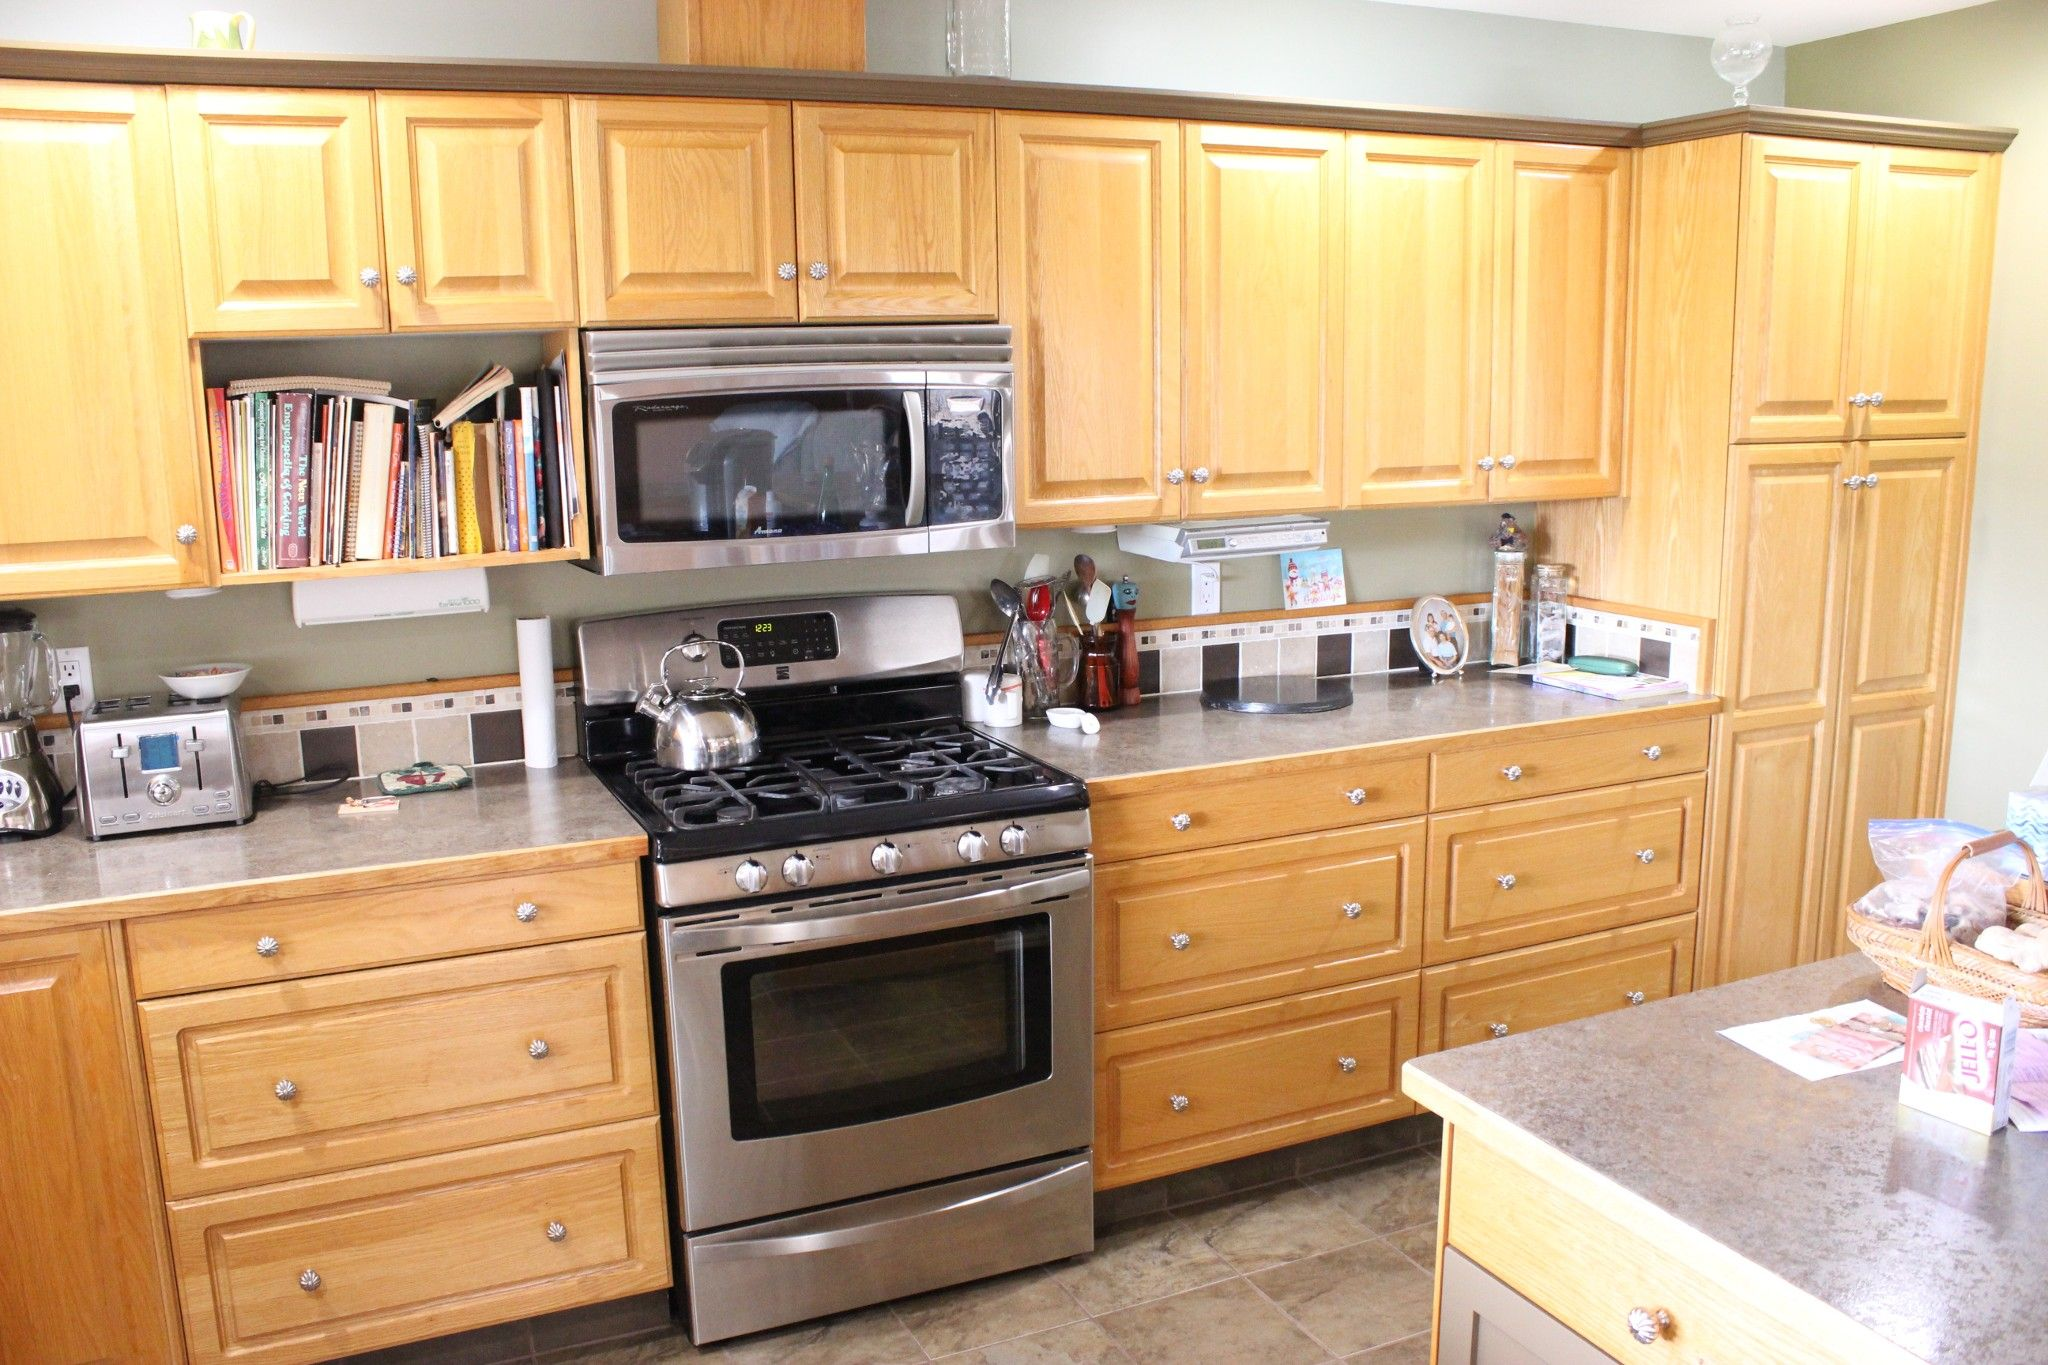 Photo 3: Photos: 3480 Navatanee Drive in Kamloops: South Thompson Valley House for sale : MLS®# 148627